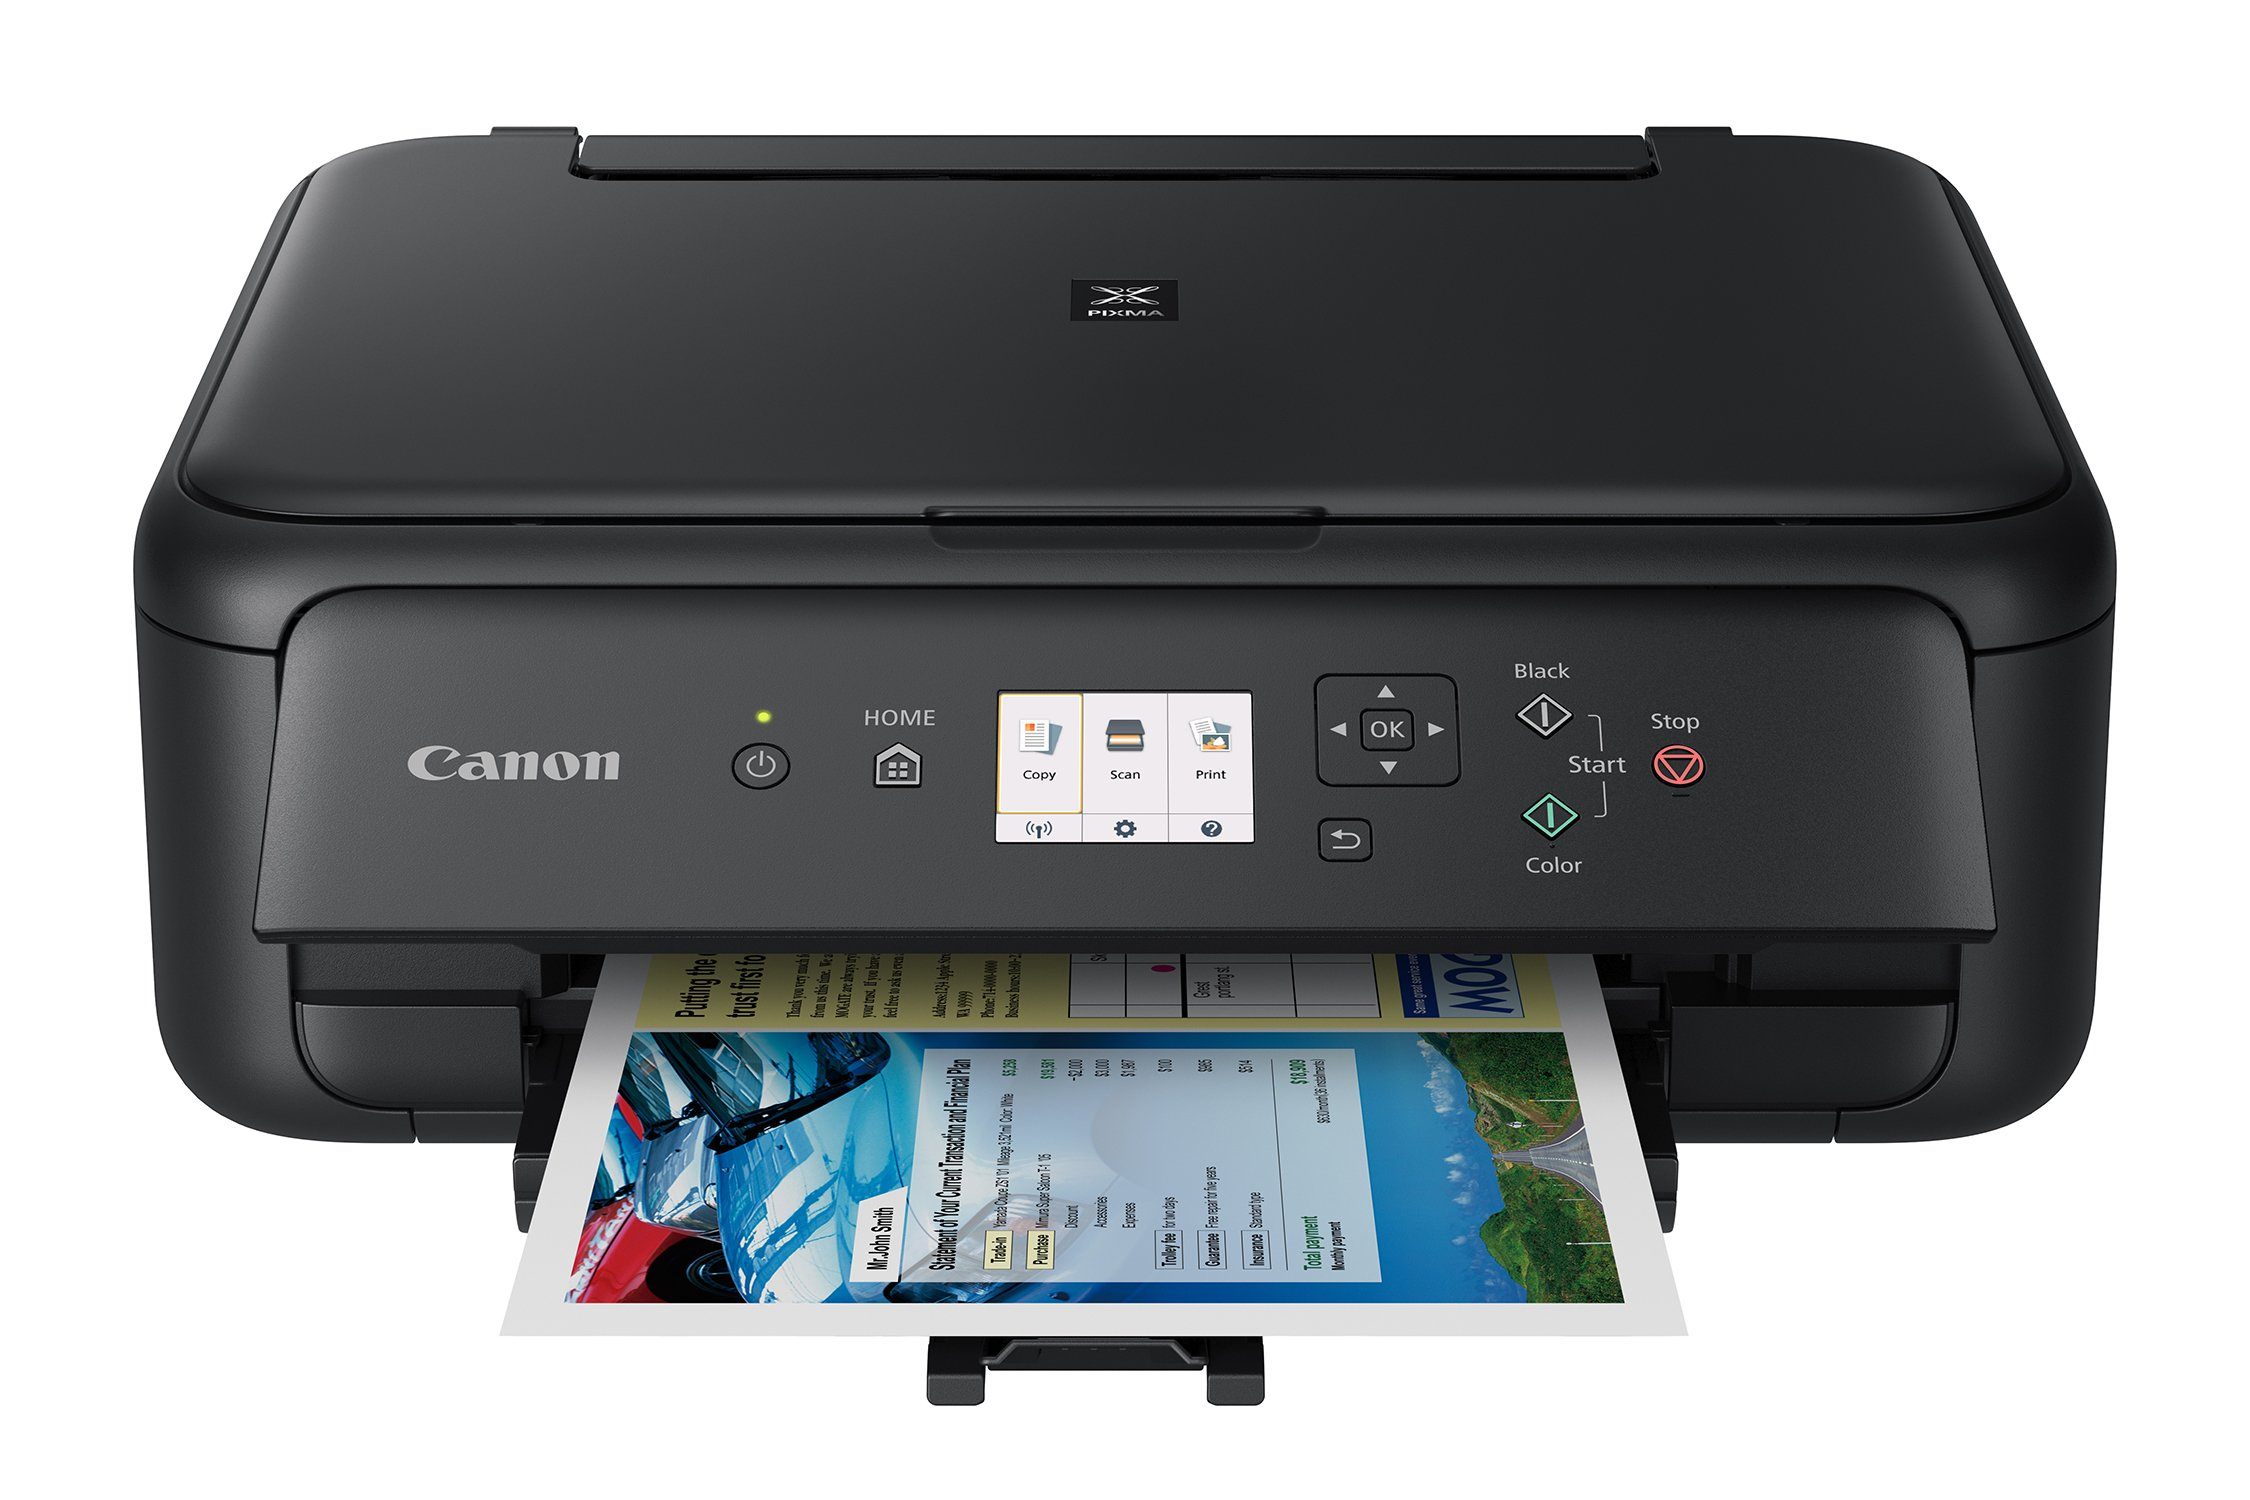 Canon TS5120 Wireless All-In-One Printer with Scanner and Copier: Mobile and Tablet Printing, with Airprint(TM) and Google Cloud Print compatible, Black by Canon